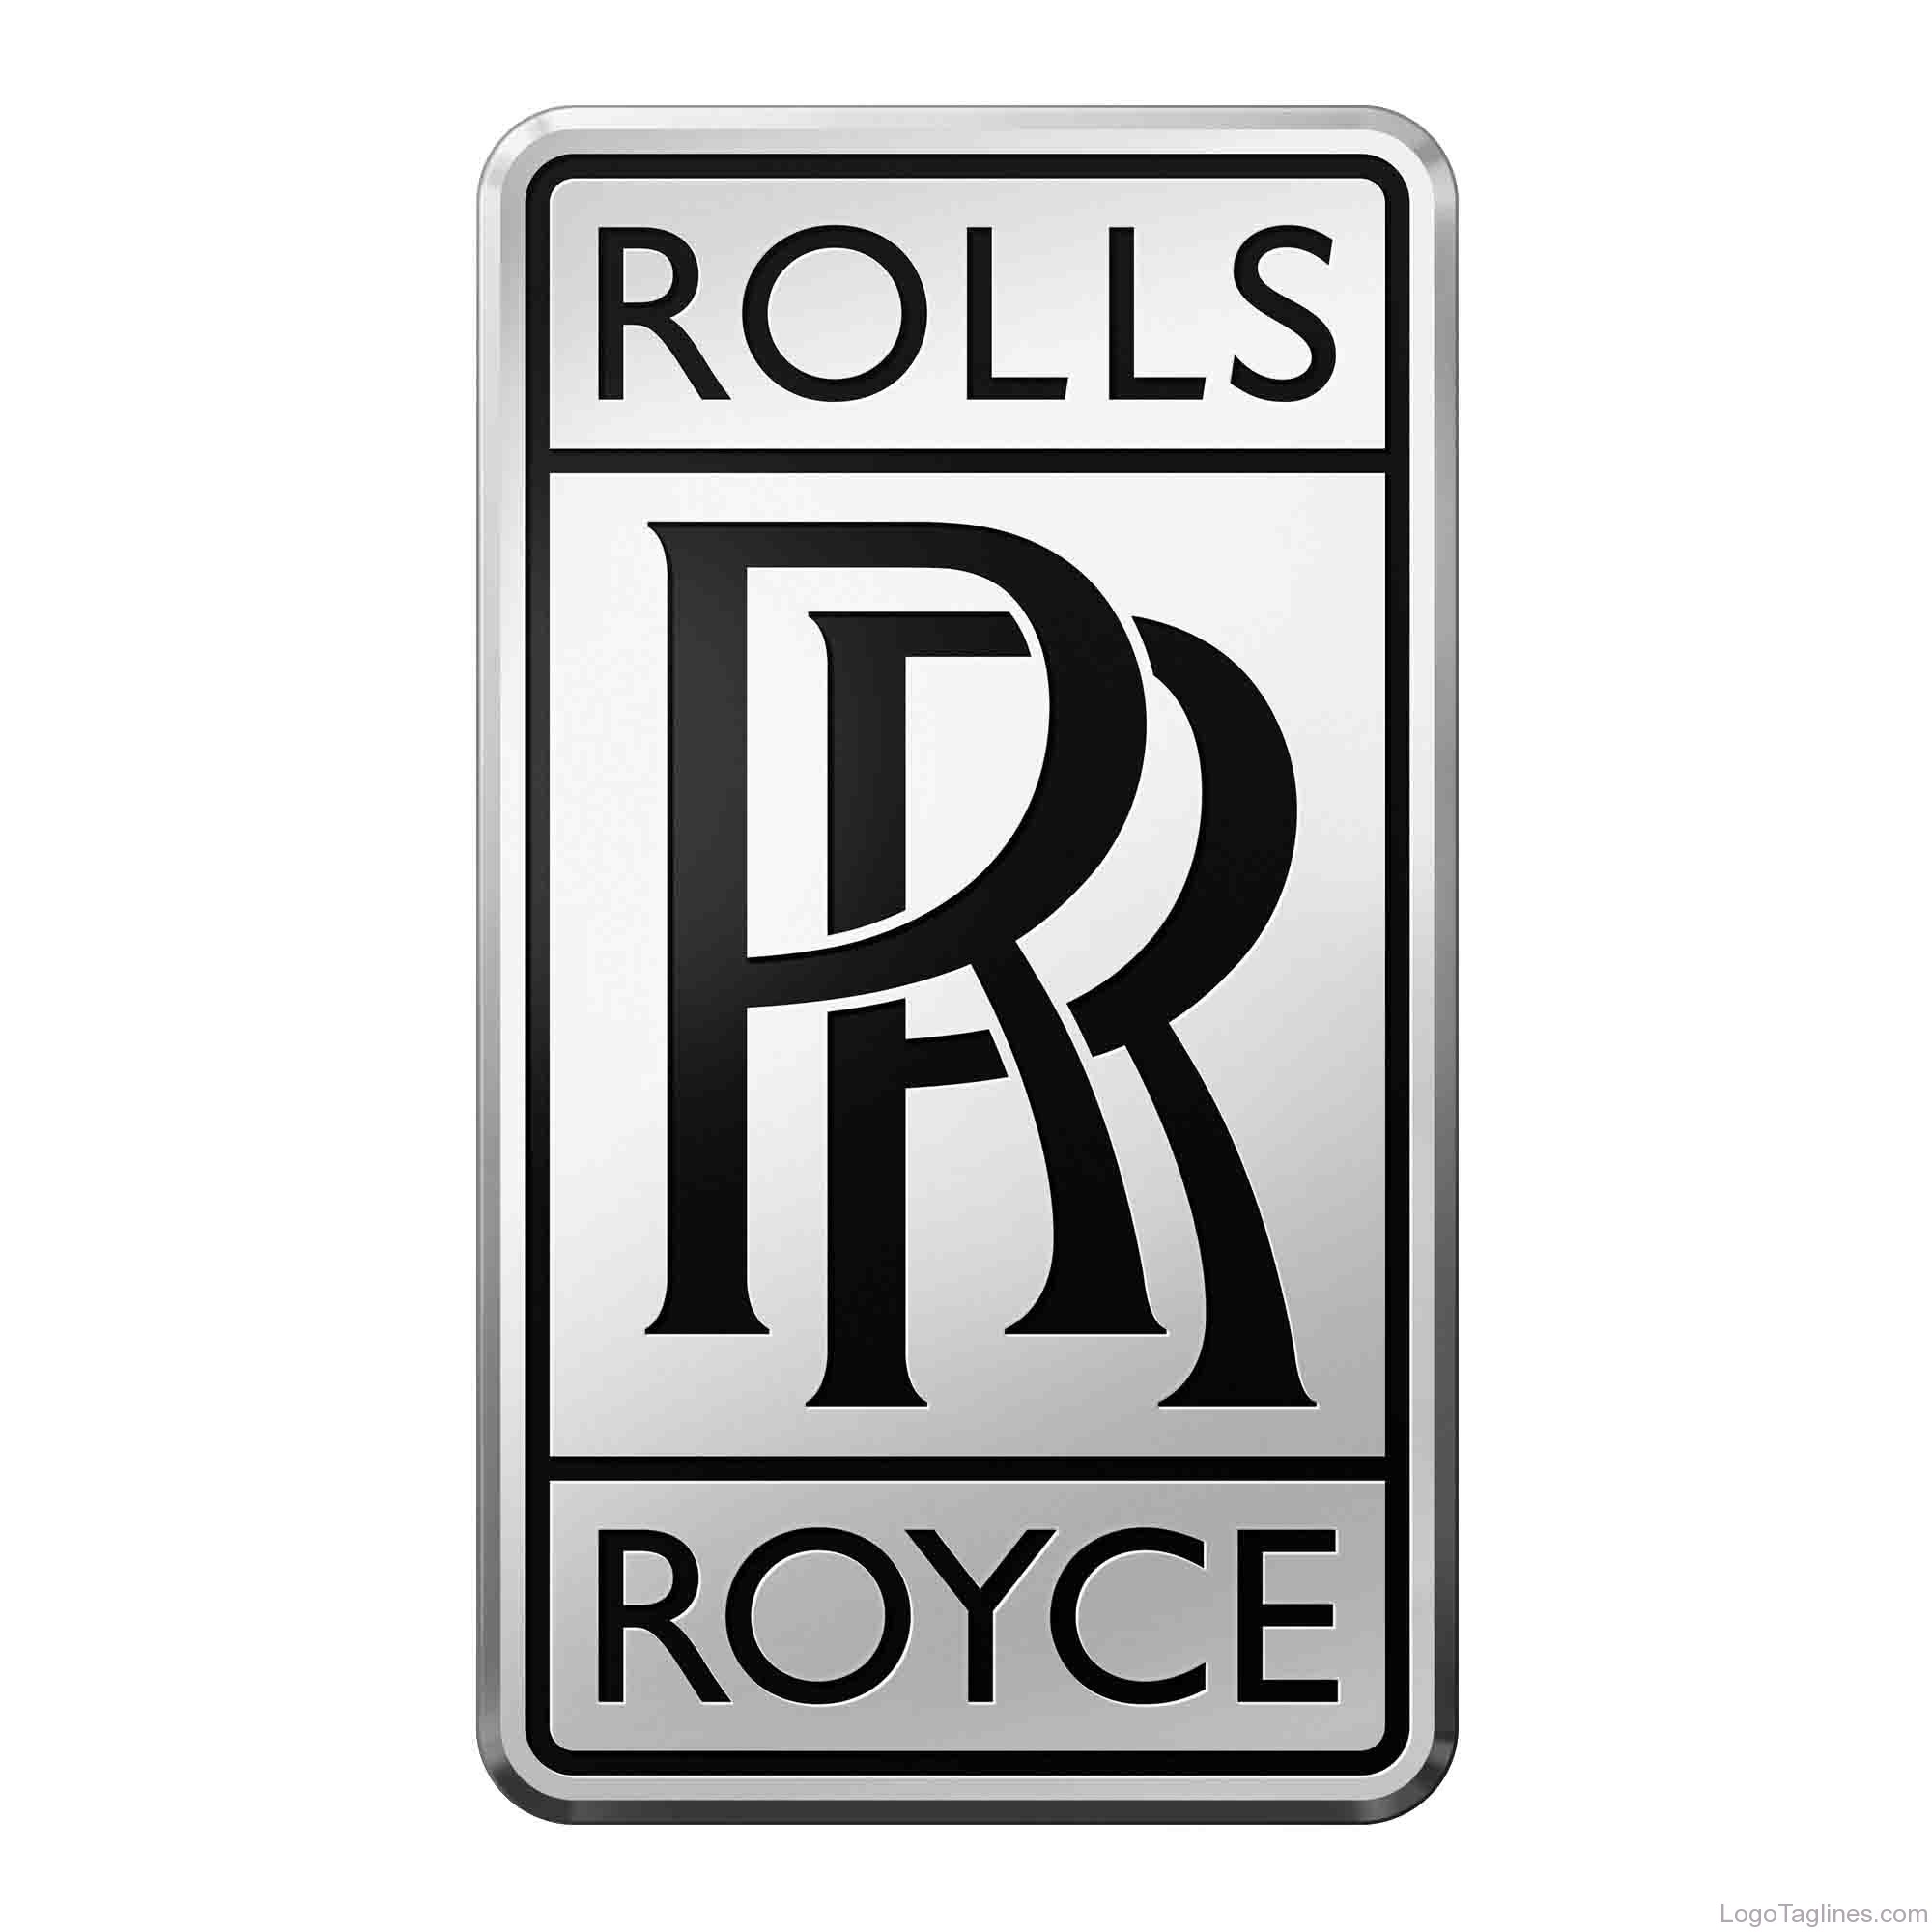 rolls royce motors logo and tagline. Black Bedroom Furniture Sets. Home Design Ideas